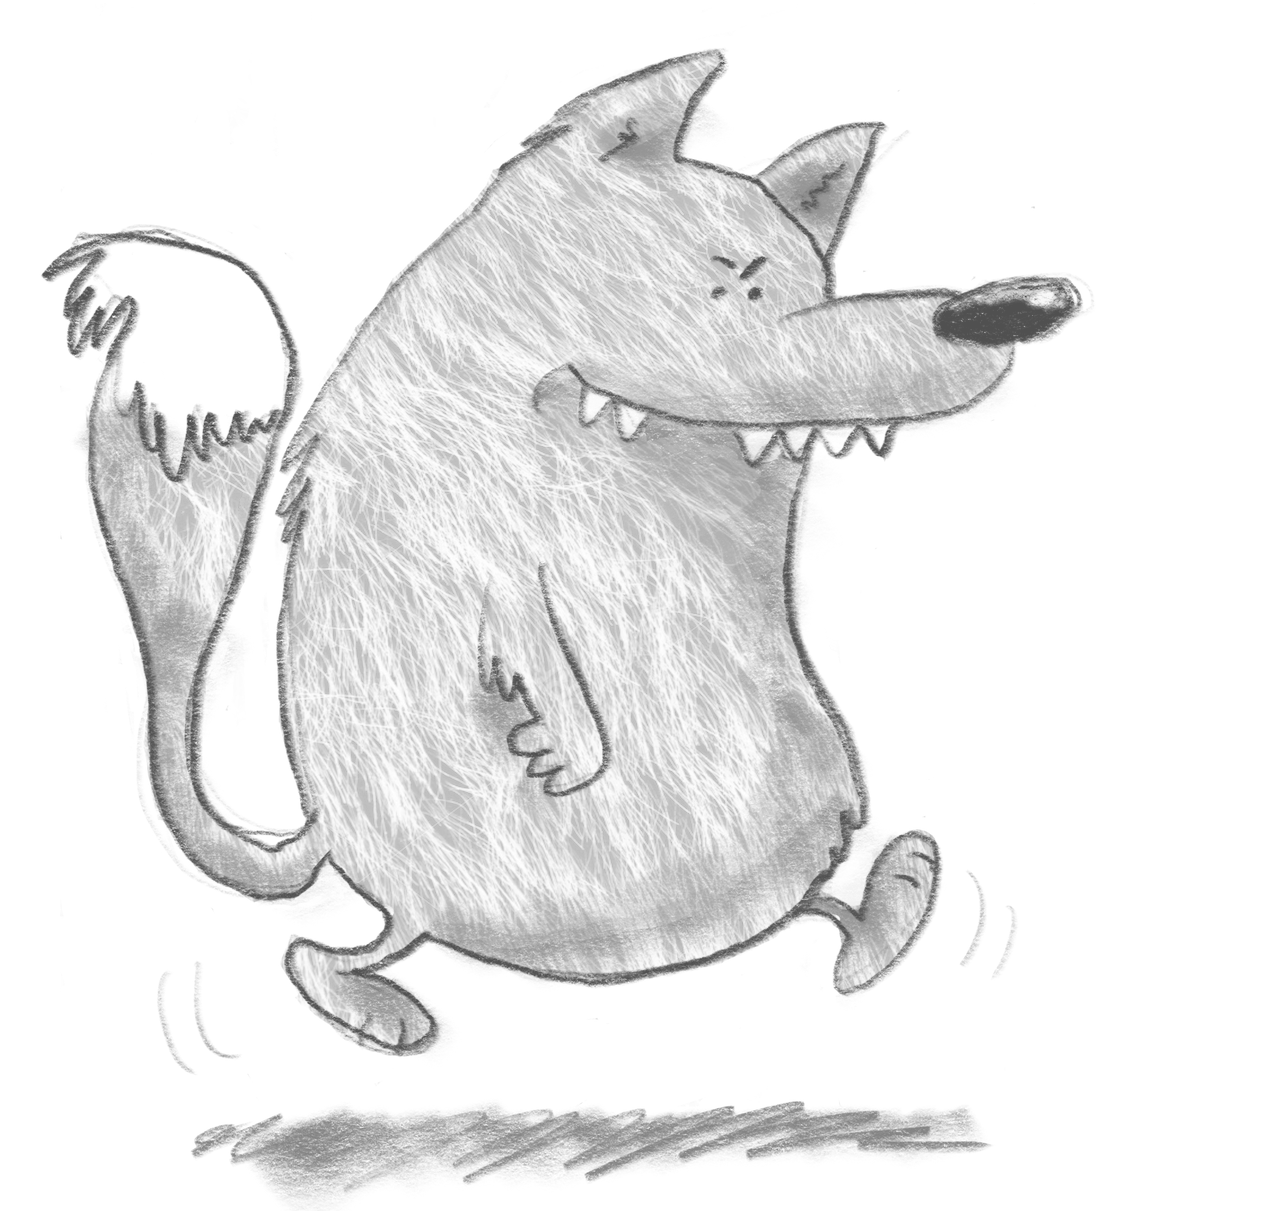 An illustration of The Big Bad Wolf from The Three Little Pigs